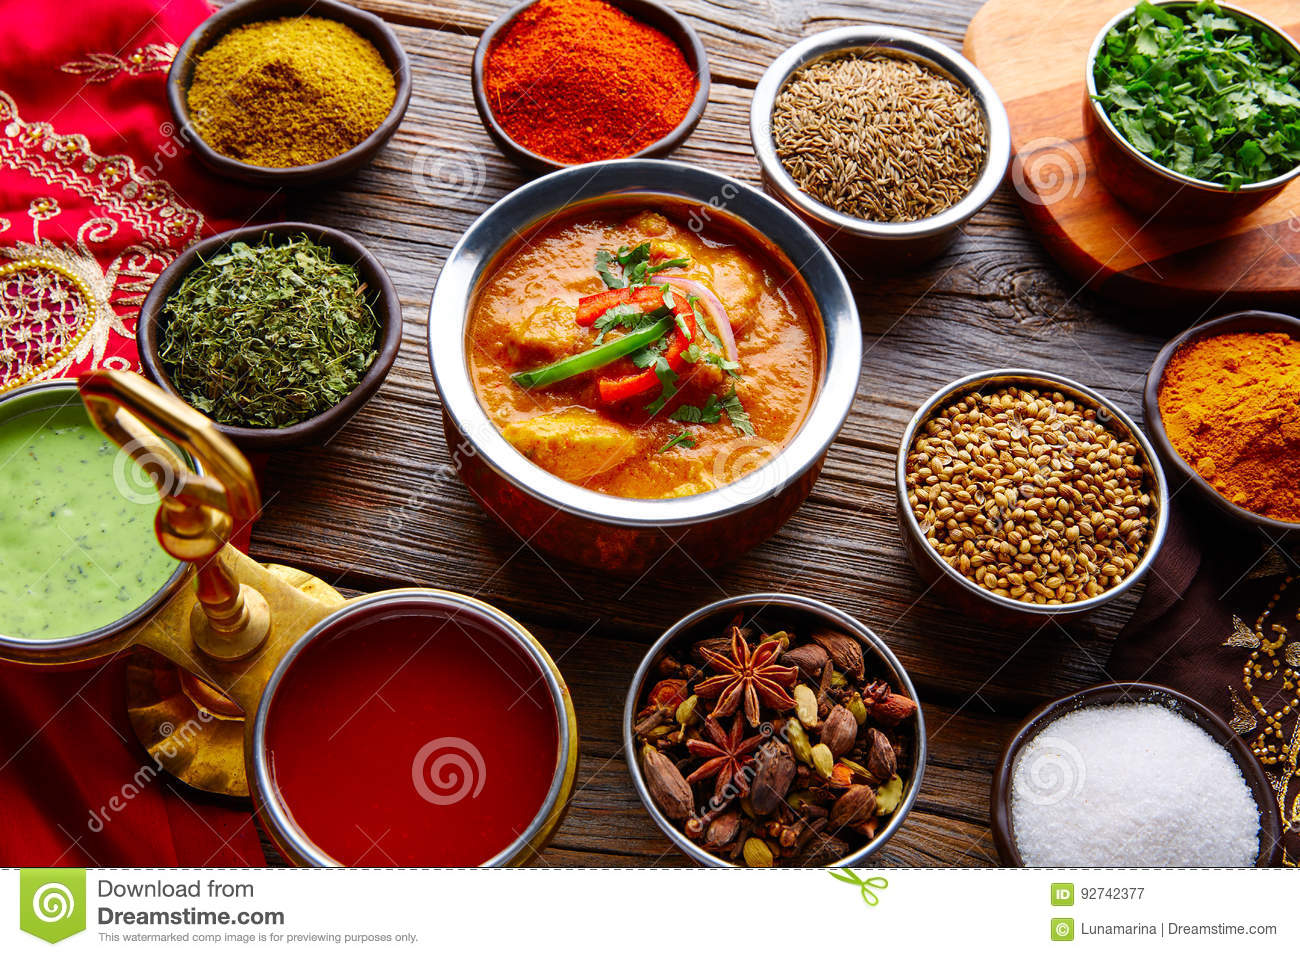 Chicken jalfrazy indian food recipe and spices stock image image chicken jalfrazy indian food recipe and spices royalty free stock photo forumfinder Images